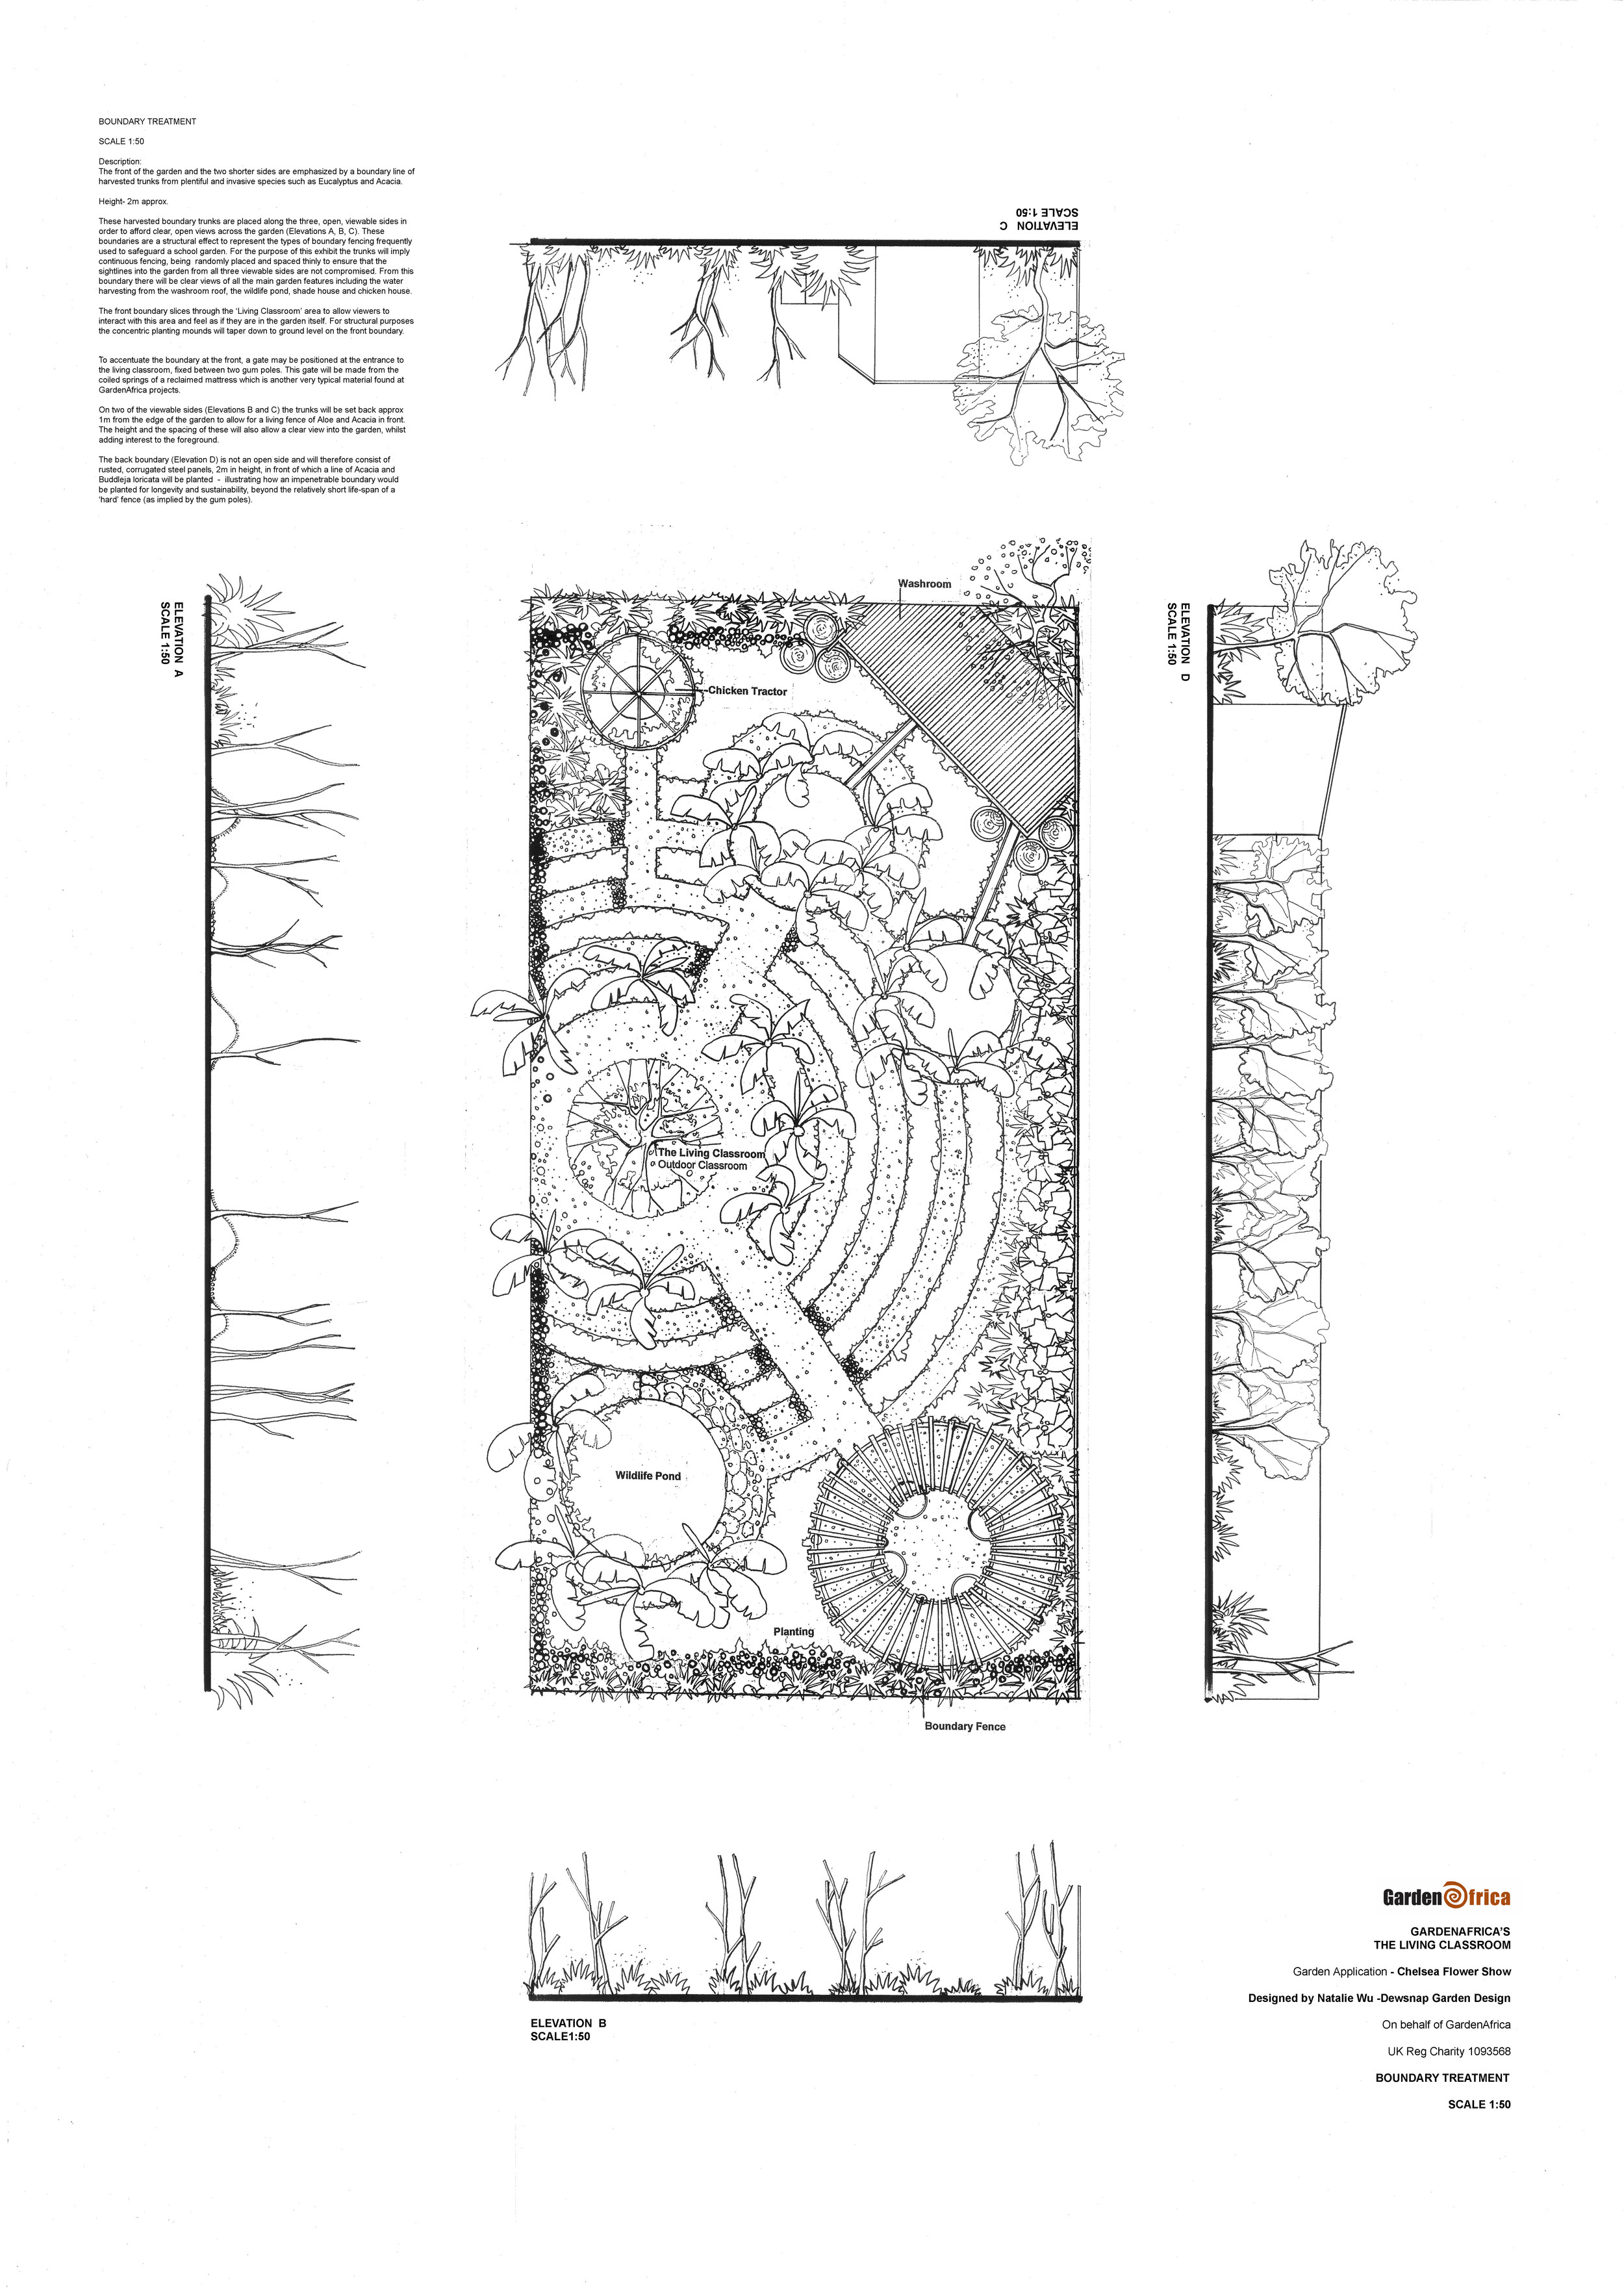 Thanks to Natalie Wu - we'd welcome your using or reproducing any part of this lovely schools garden design to encourage children in to the garden to study the wildlife this design encourages.